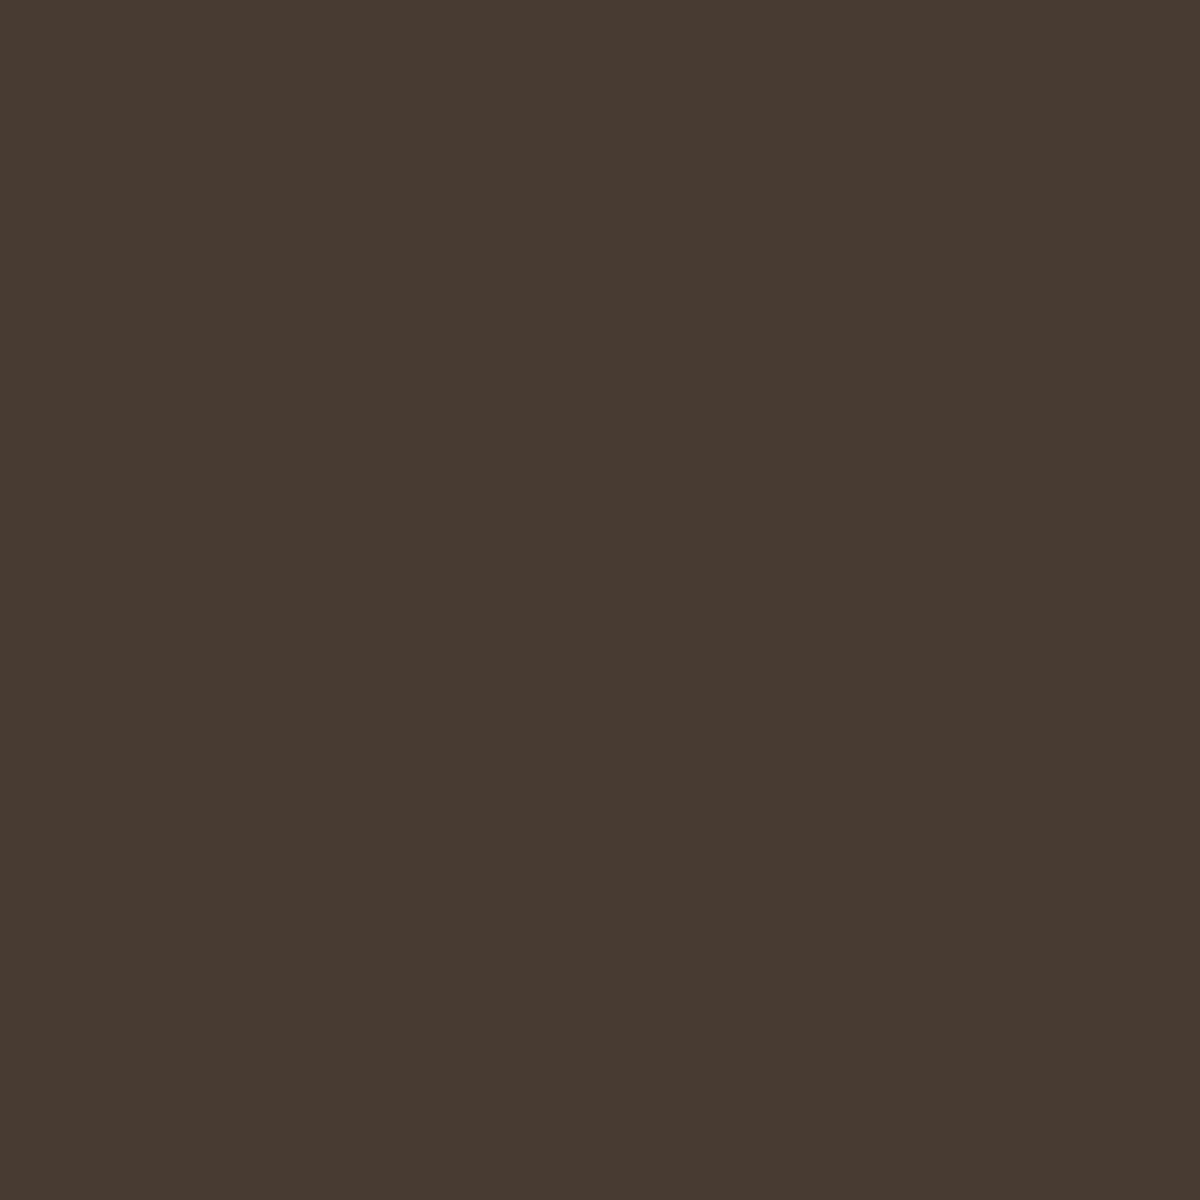 2048x2048-dark-taupe-solid-color-background.jpeg